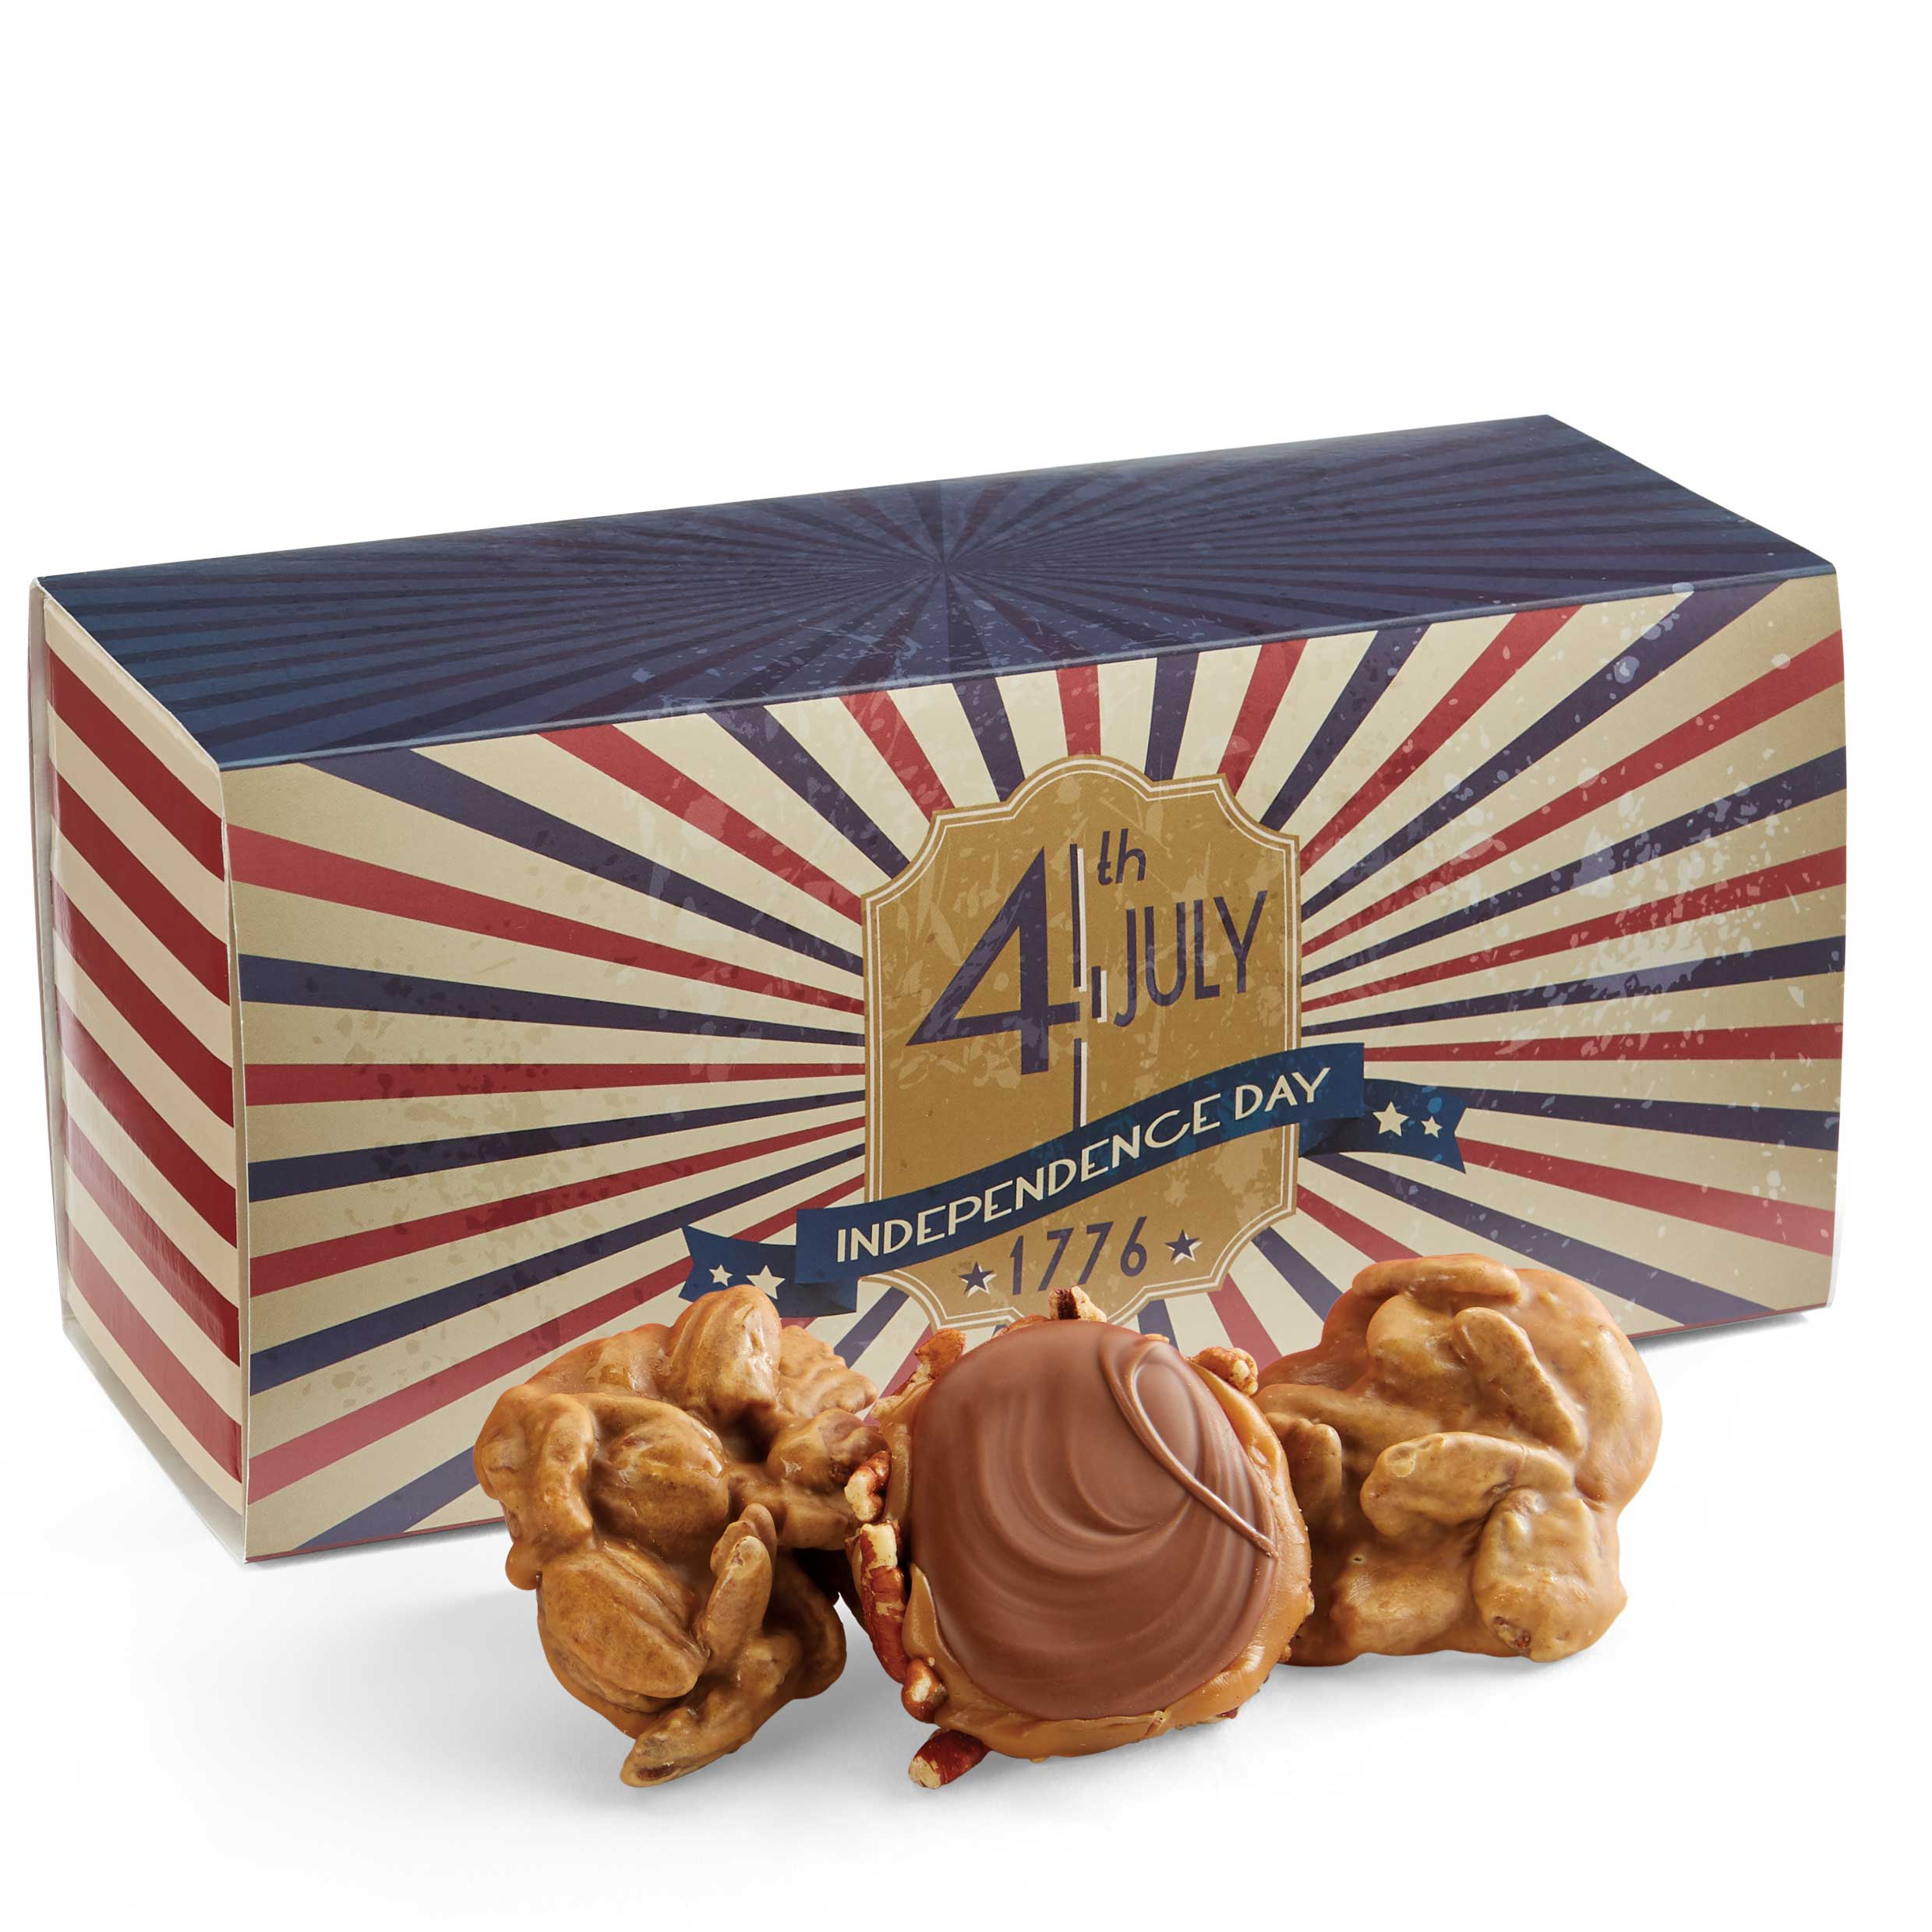 12 Piece Praline & Turtle Gopher Duo in the 4th of July Gift Box